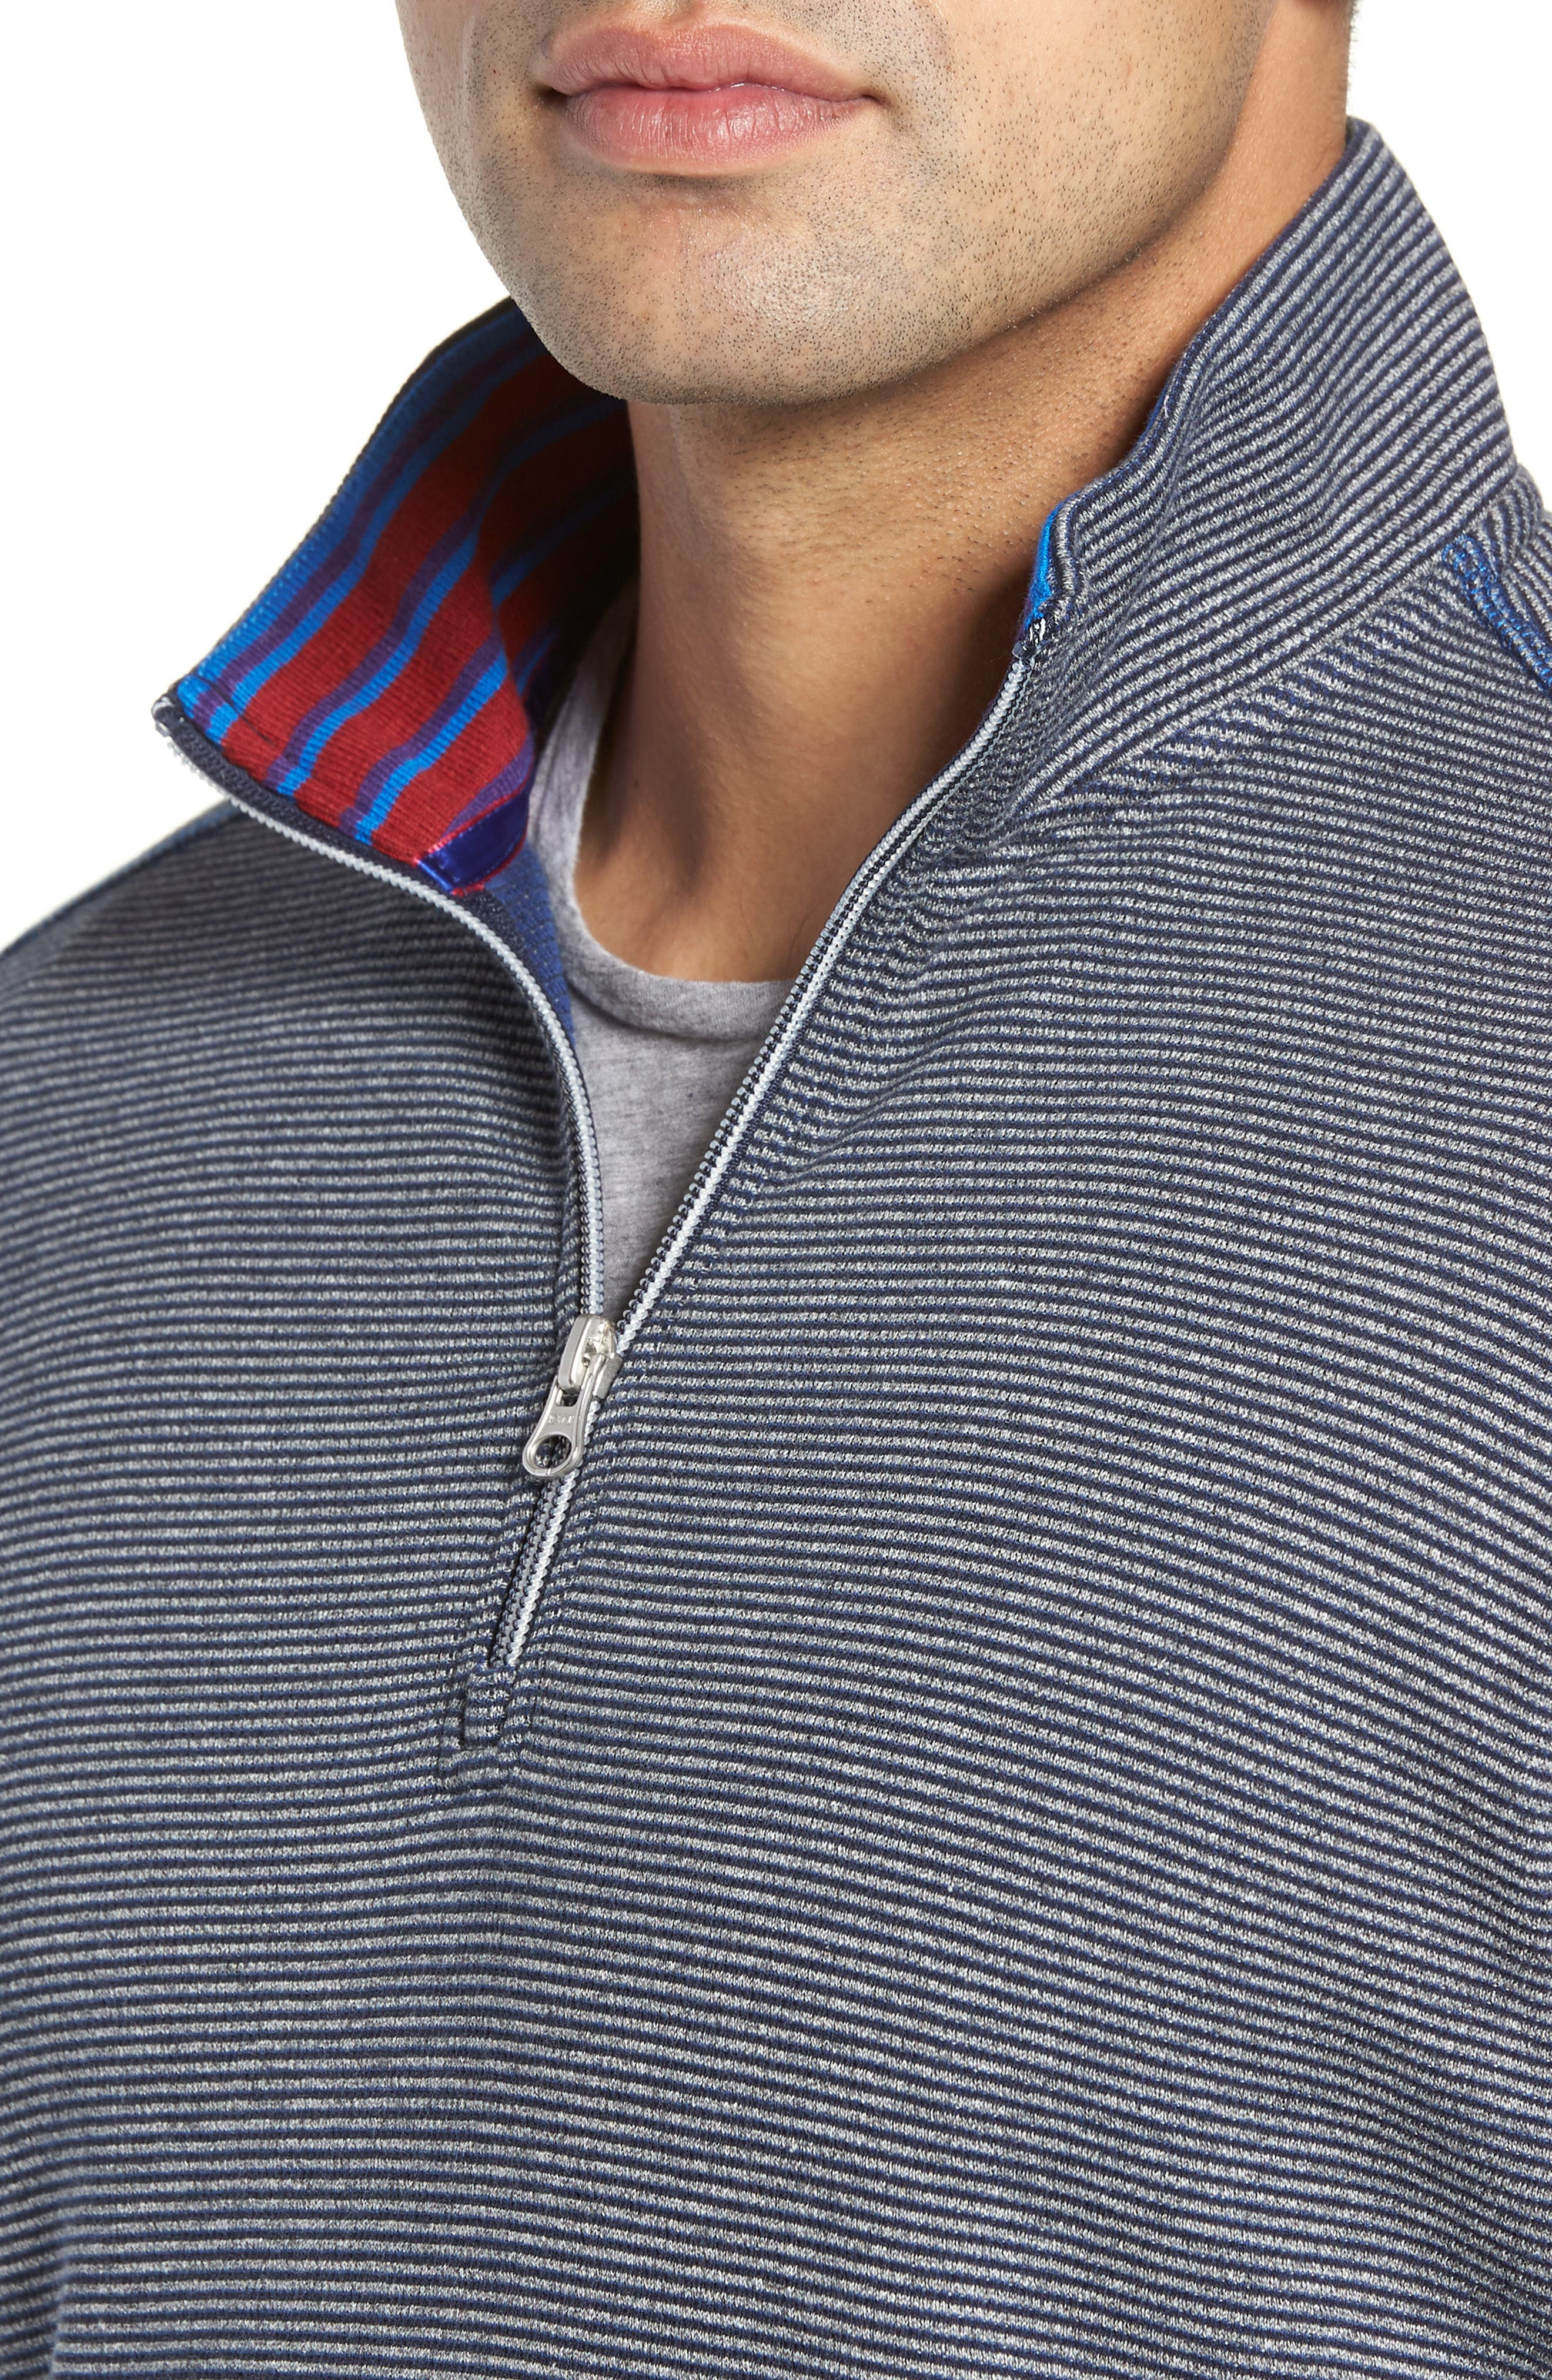 Kitson Classic Fit Stripe Quarter Zip Sweater,                             Alternate thumbnail 4, color,                             HEATHER NAVY